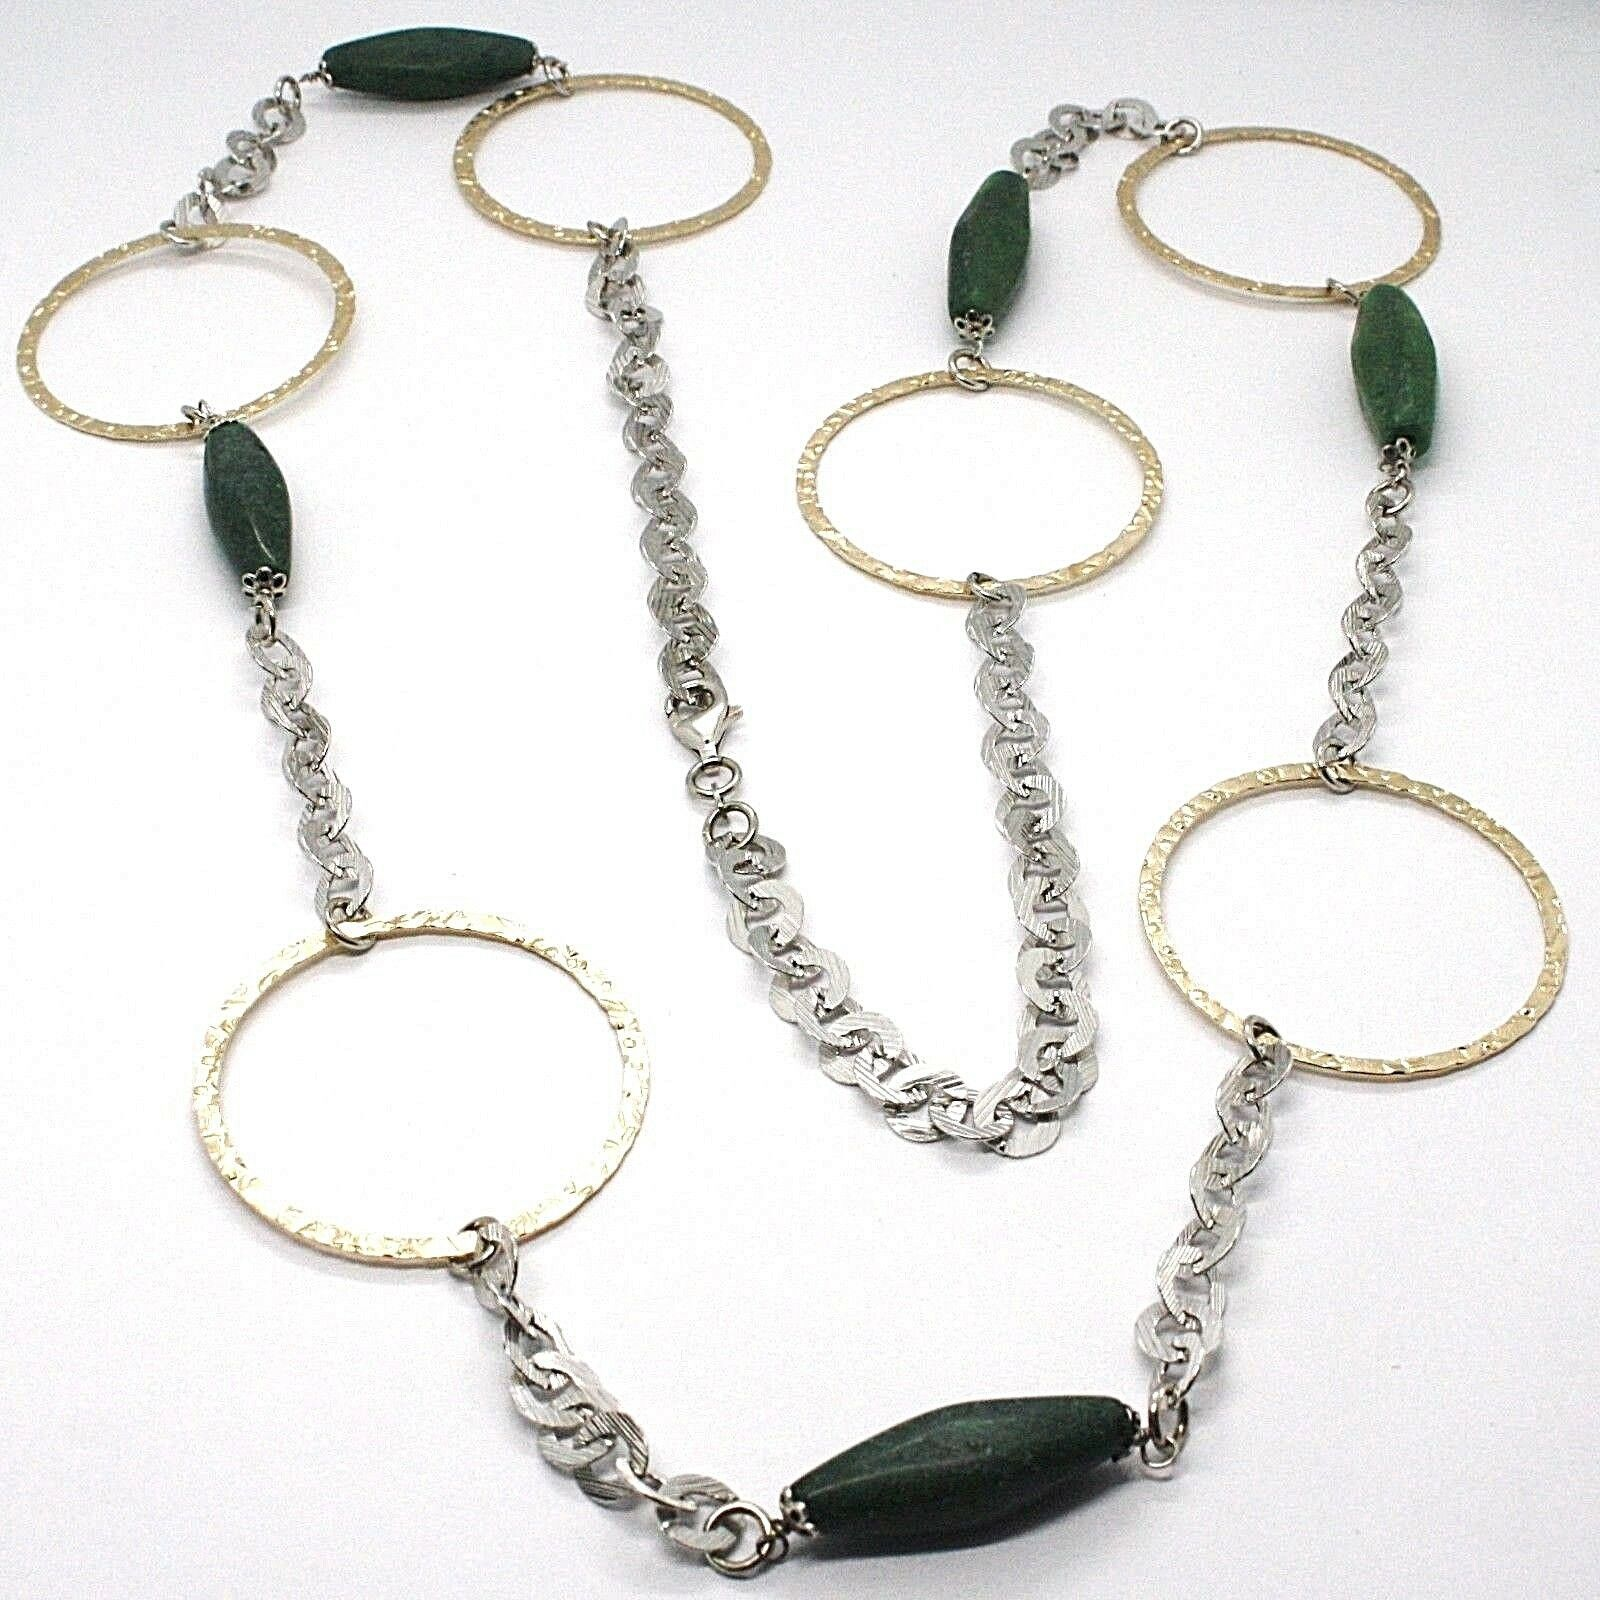 Silver 925 Necklace,Jade Green,Circles Yellow,100 cm, Rolo ' Hammered